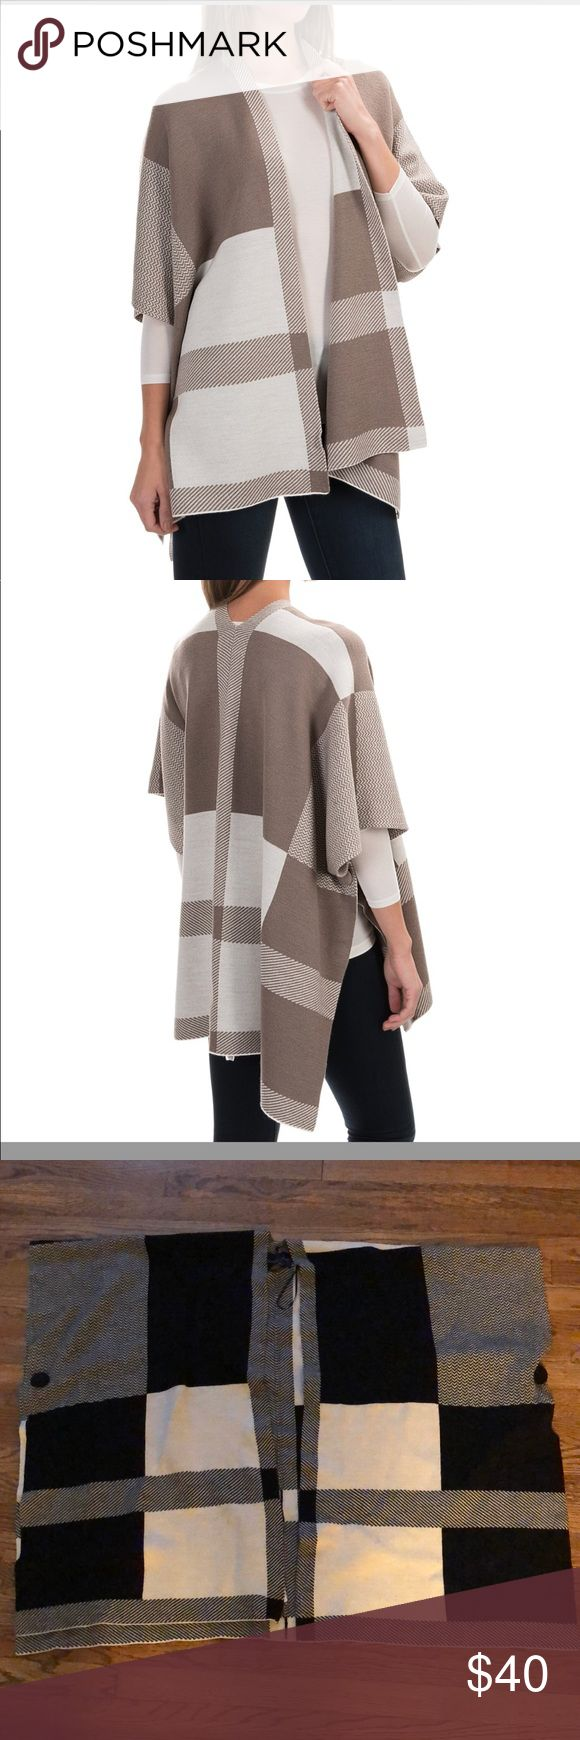 Adrienne Vittadini open front poncho sweater Adrienne Vittadini Color-Block Wool Poncho in BLACK AND WHITE! Adrienne Vittadini's Color-Block wool poncho offers a cozy way to usher in cooler weather. With decorative buttons at the side and a mix of patterns on the color-blocked wool, this toasty layer offers eye-catching appeal when worn with jeans, leggings and your favorite skirts. Please note, stock photos for fit. Color is BLACK AND WHITE   Warm wool knit Open front Buttoned side…